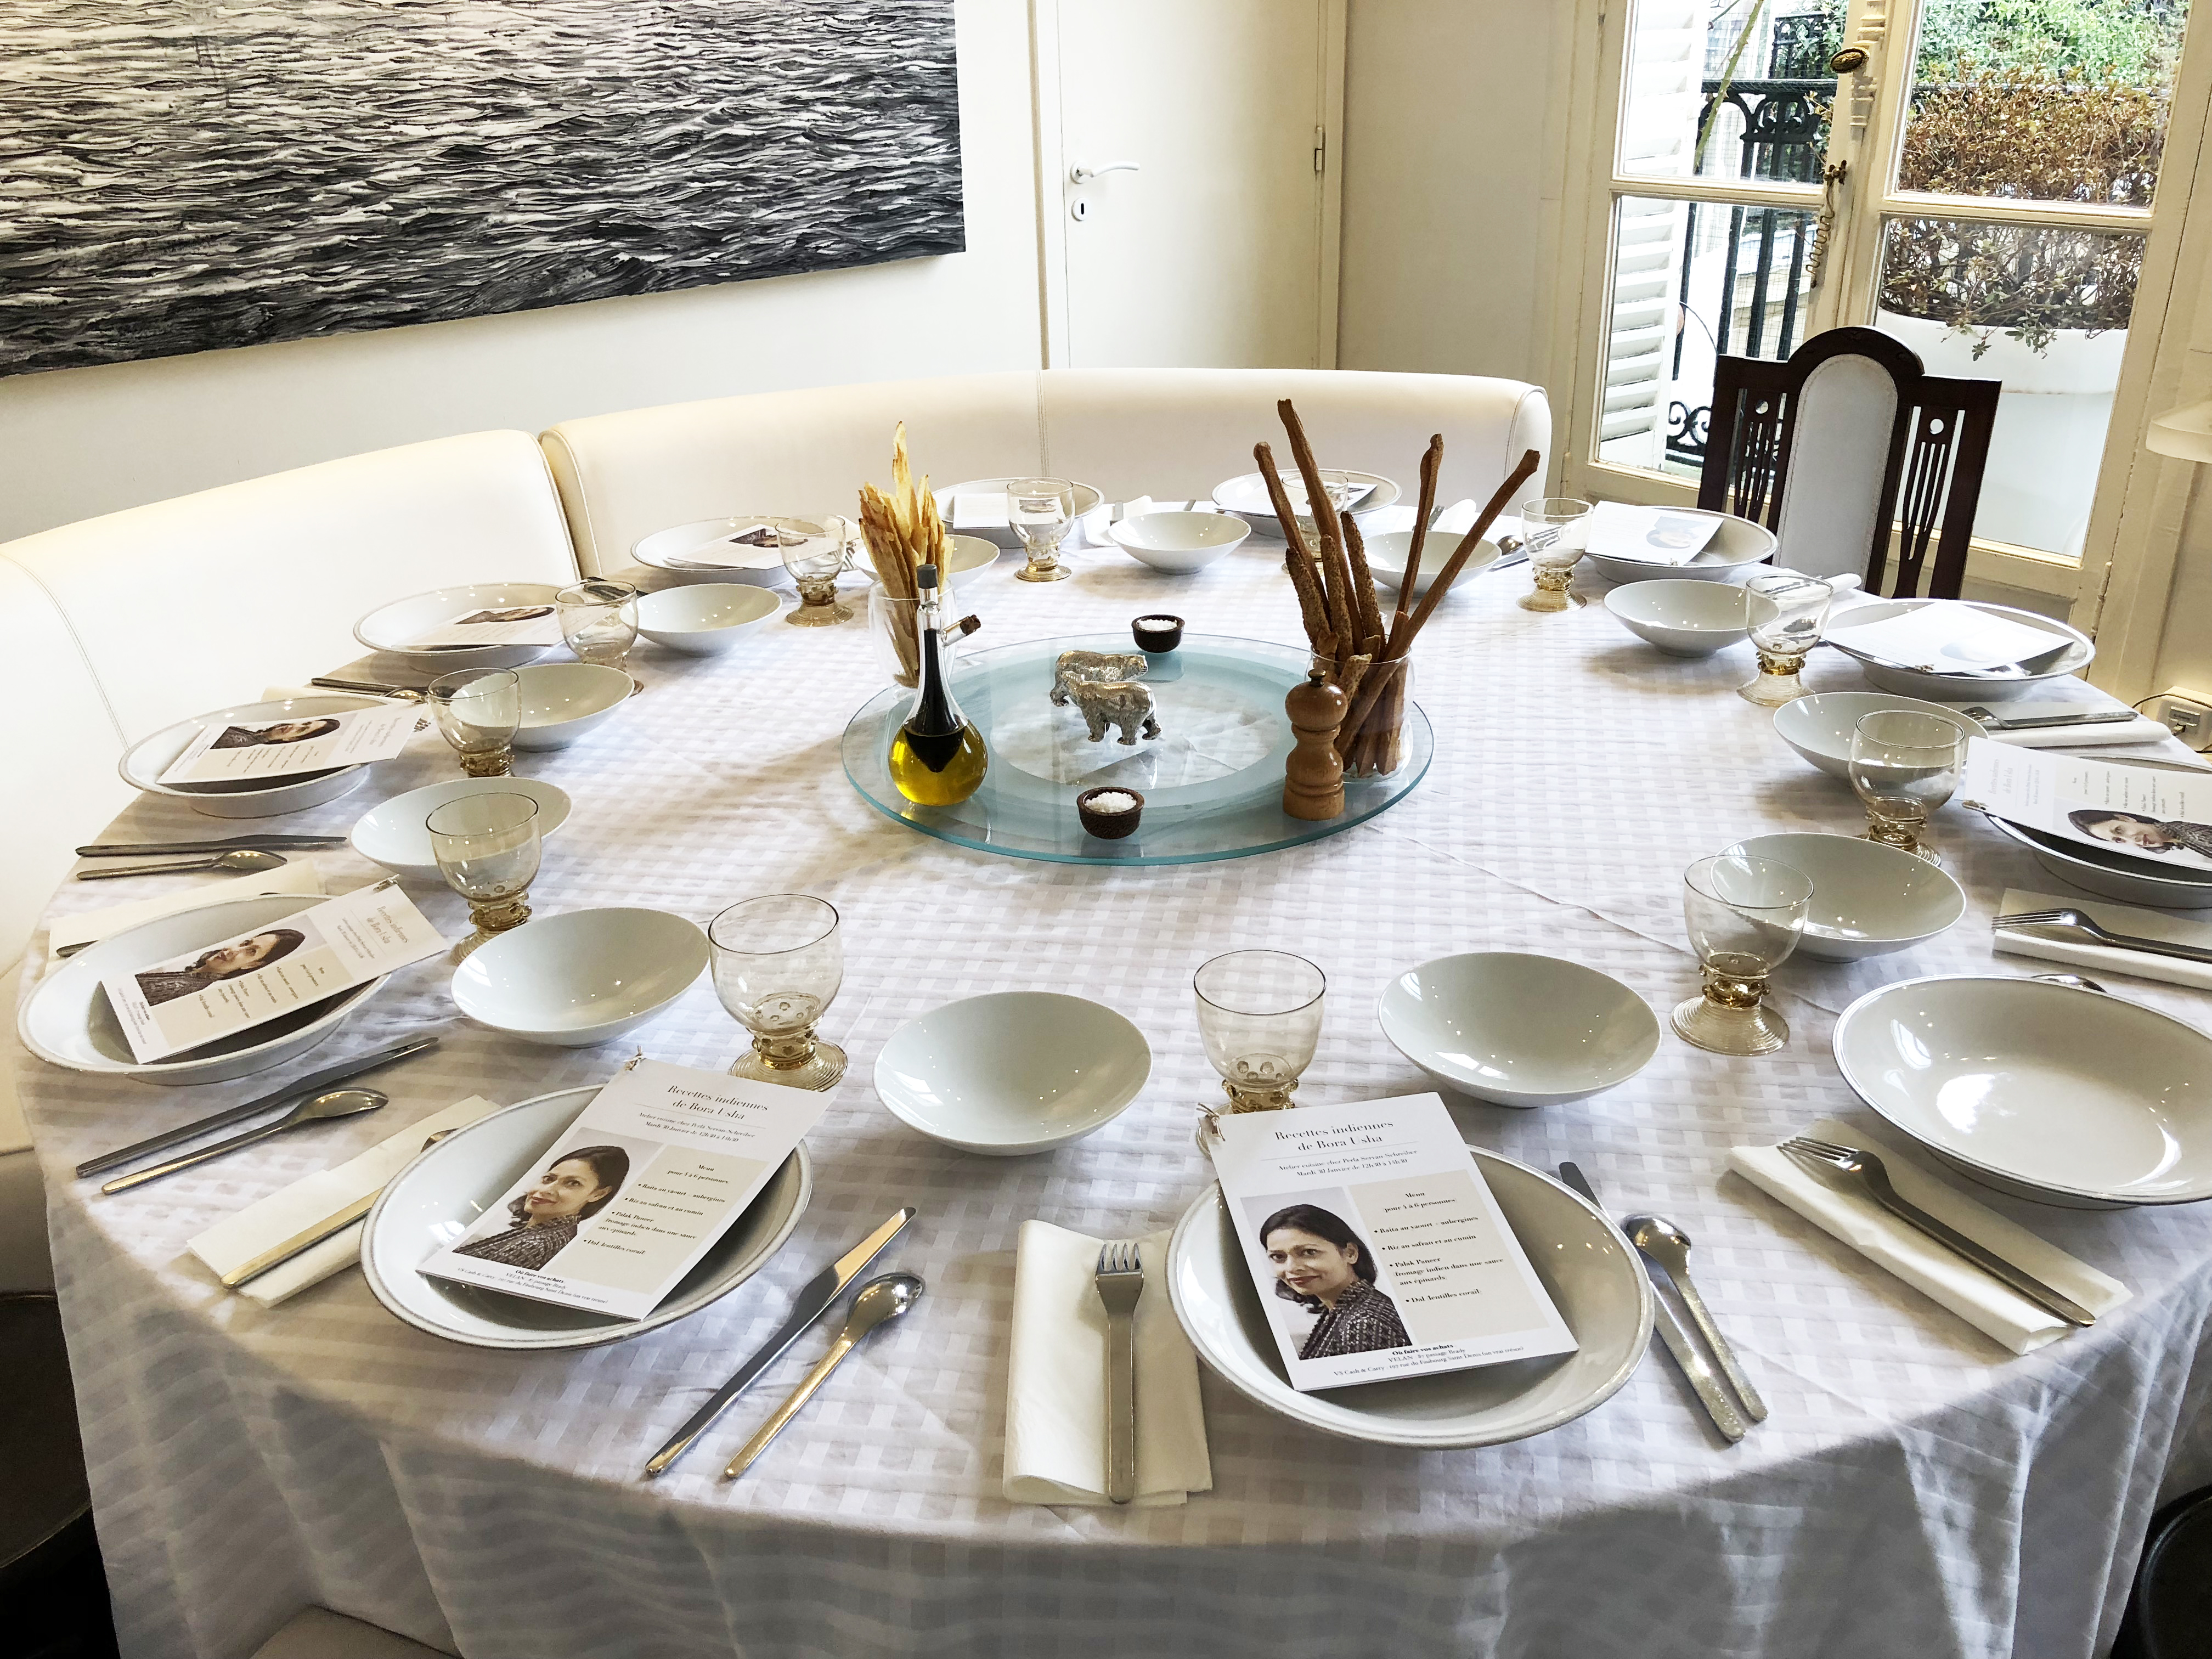 table all set for lunch